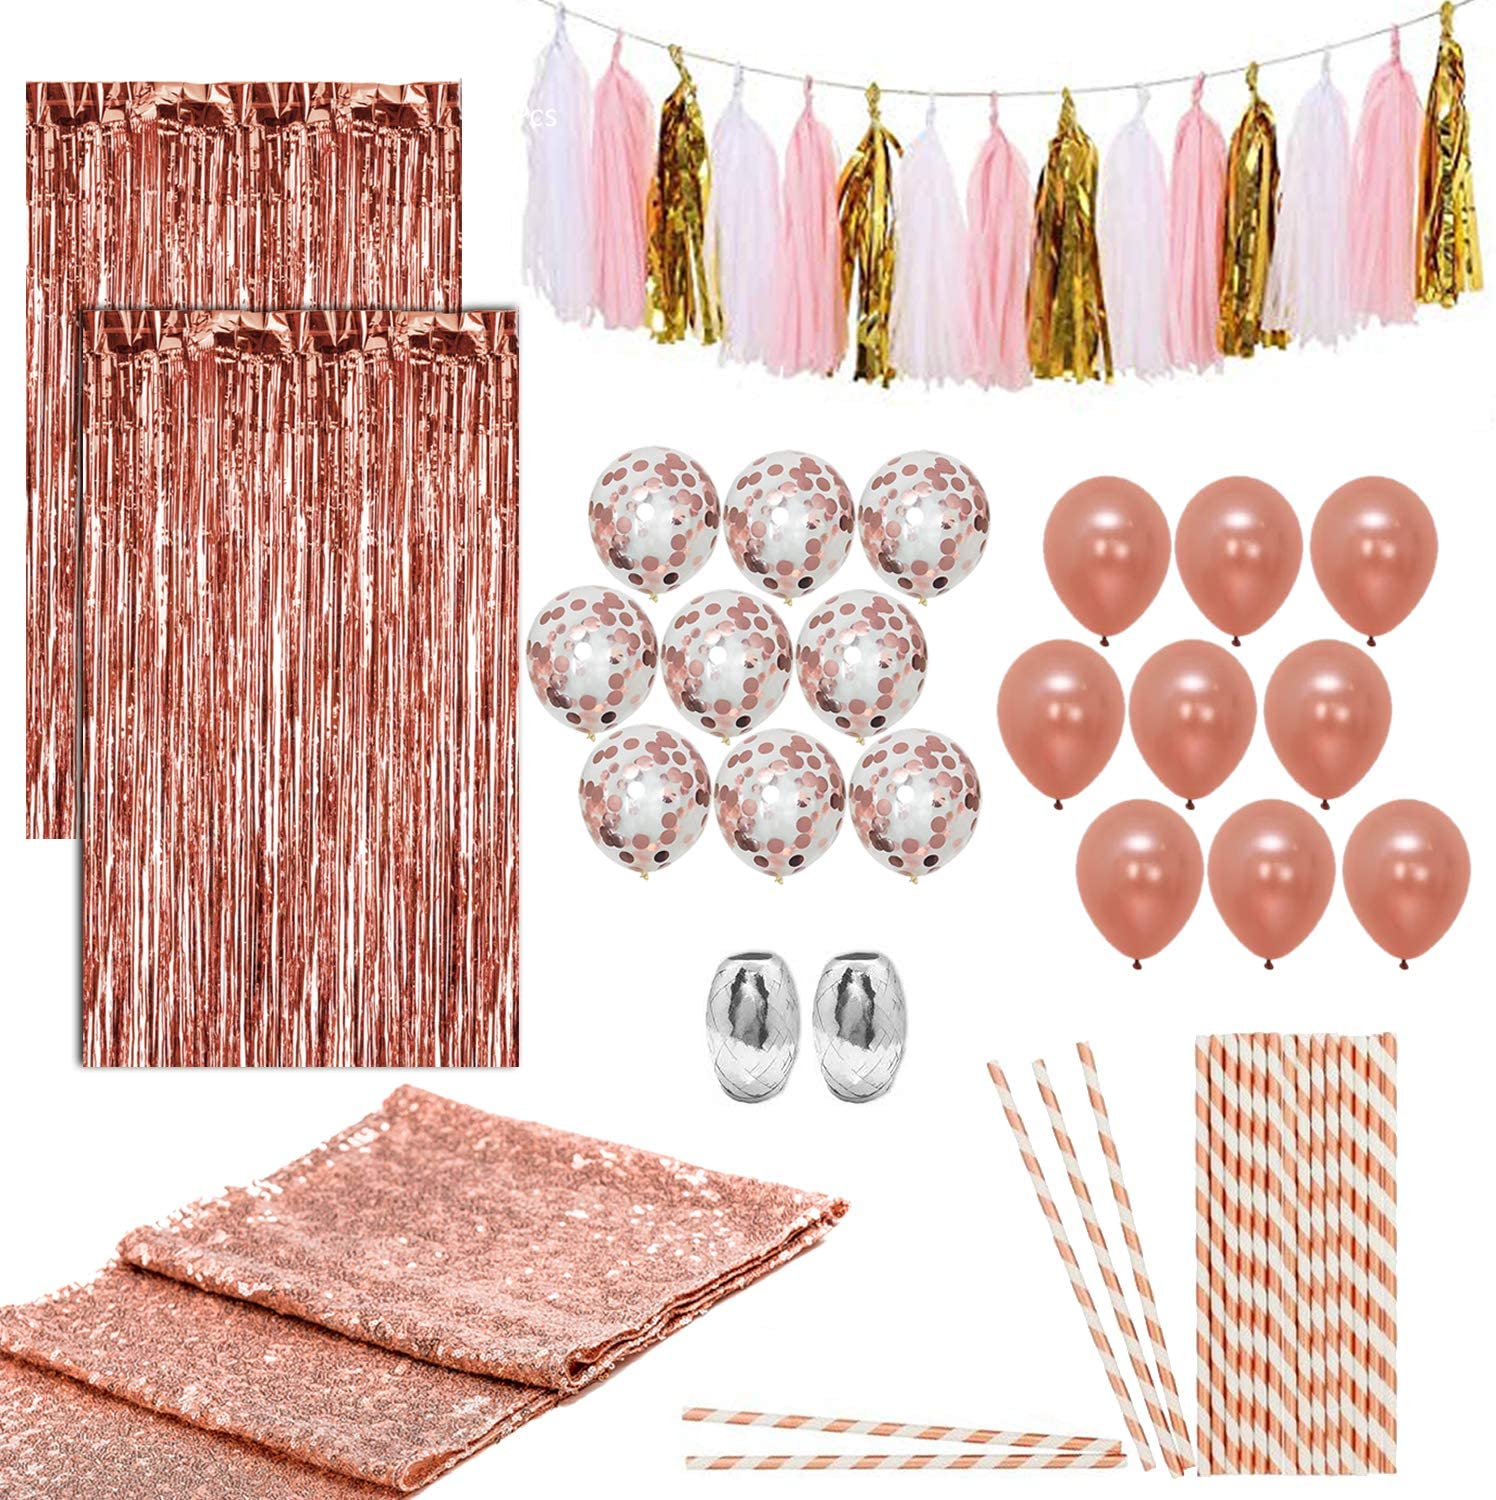 Artunique 63pc Rose Gold Party Decorations Kit | Huge Rose Gold Latex and Confetti Balloons (18) | Sequin Table Runner (1) | Fringe Curtain (2) | Ribbon (2) | Paper Straws (25) | Tassle Garland (15)